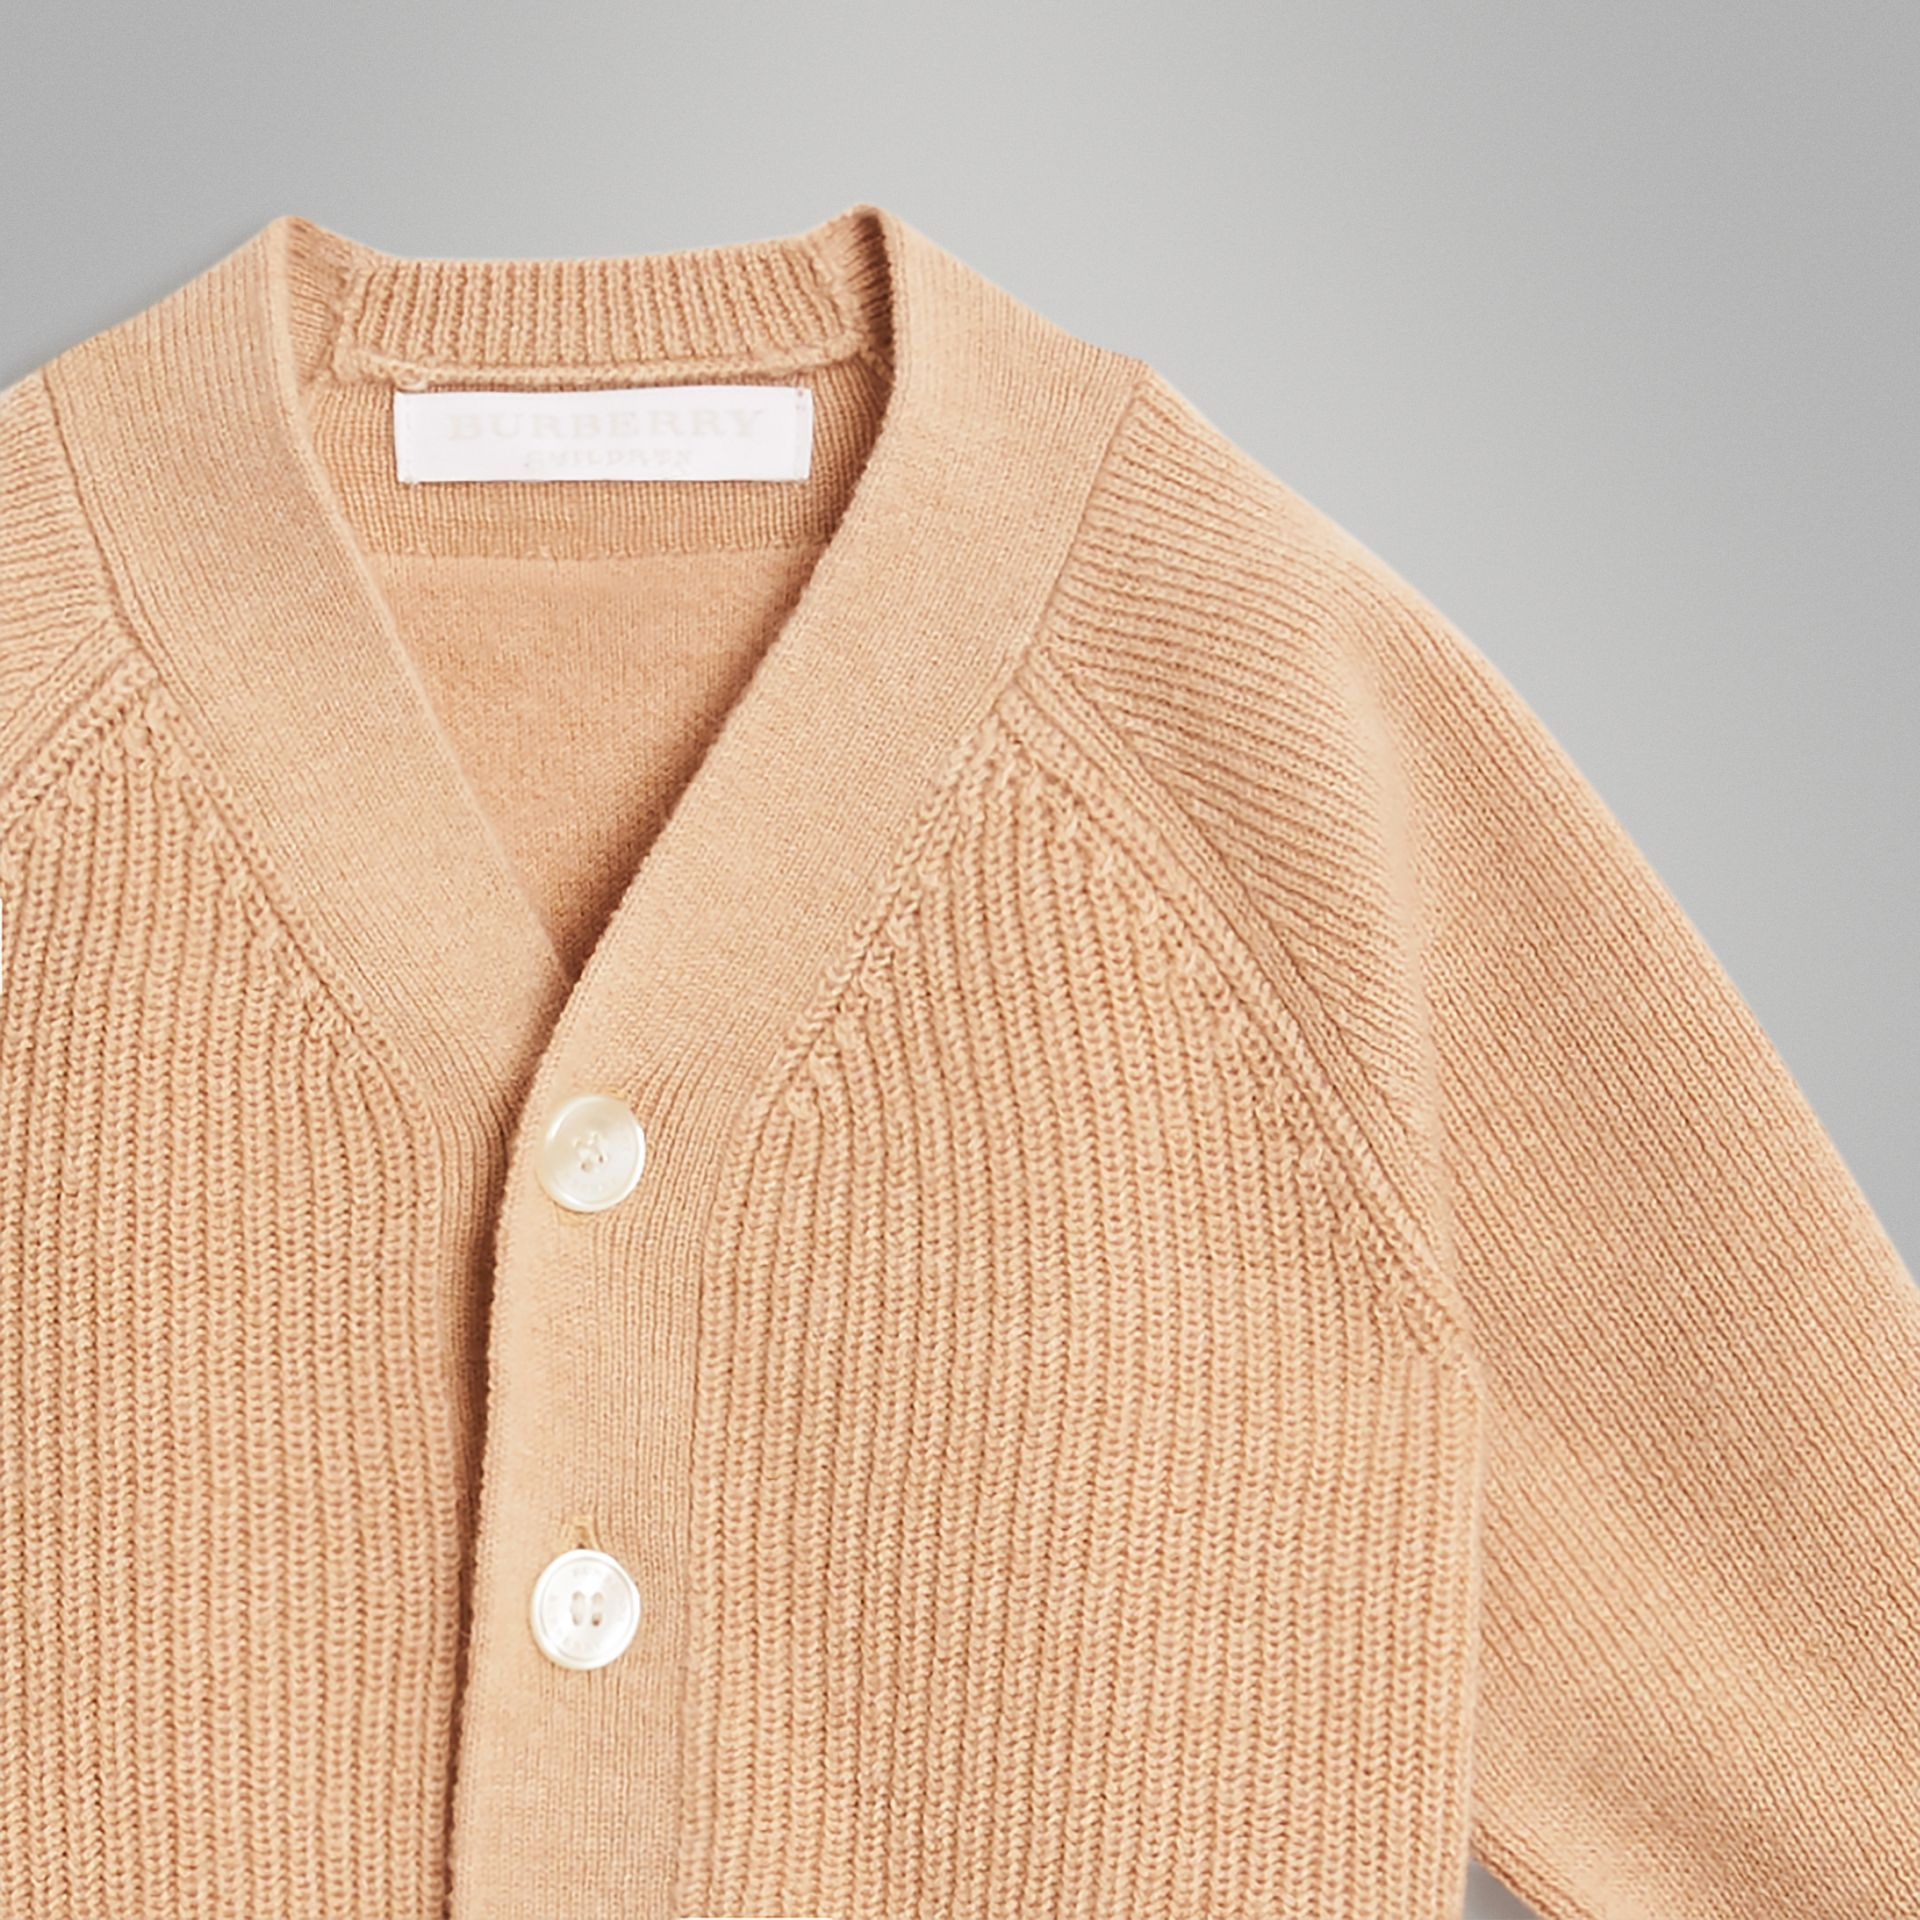 Cashmere Cotton Knit Cardigan in Peach - Children | Burberry United Kingdom - gallery image 4